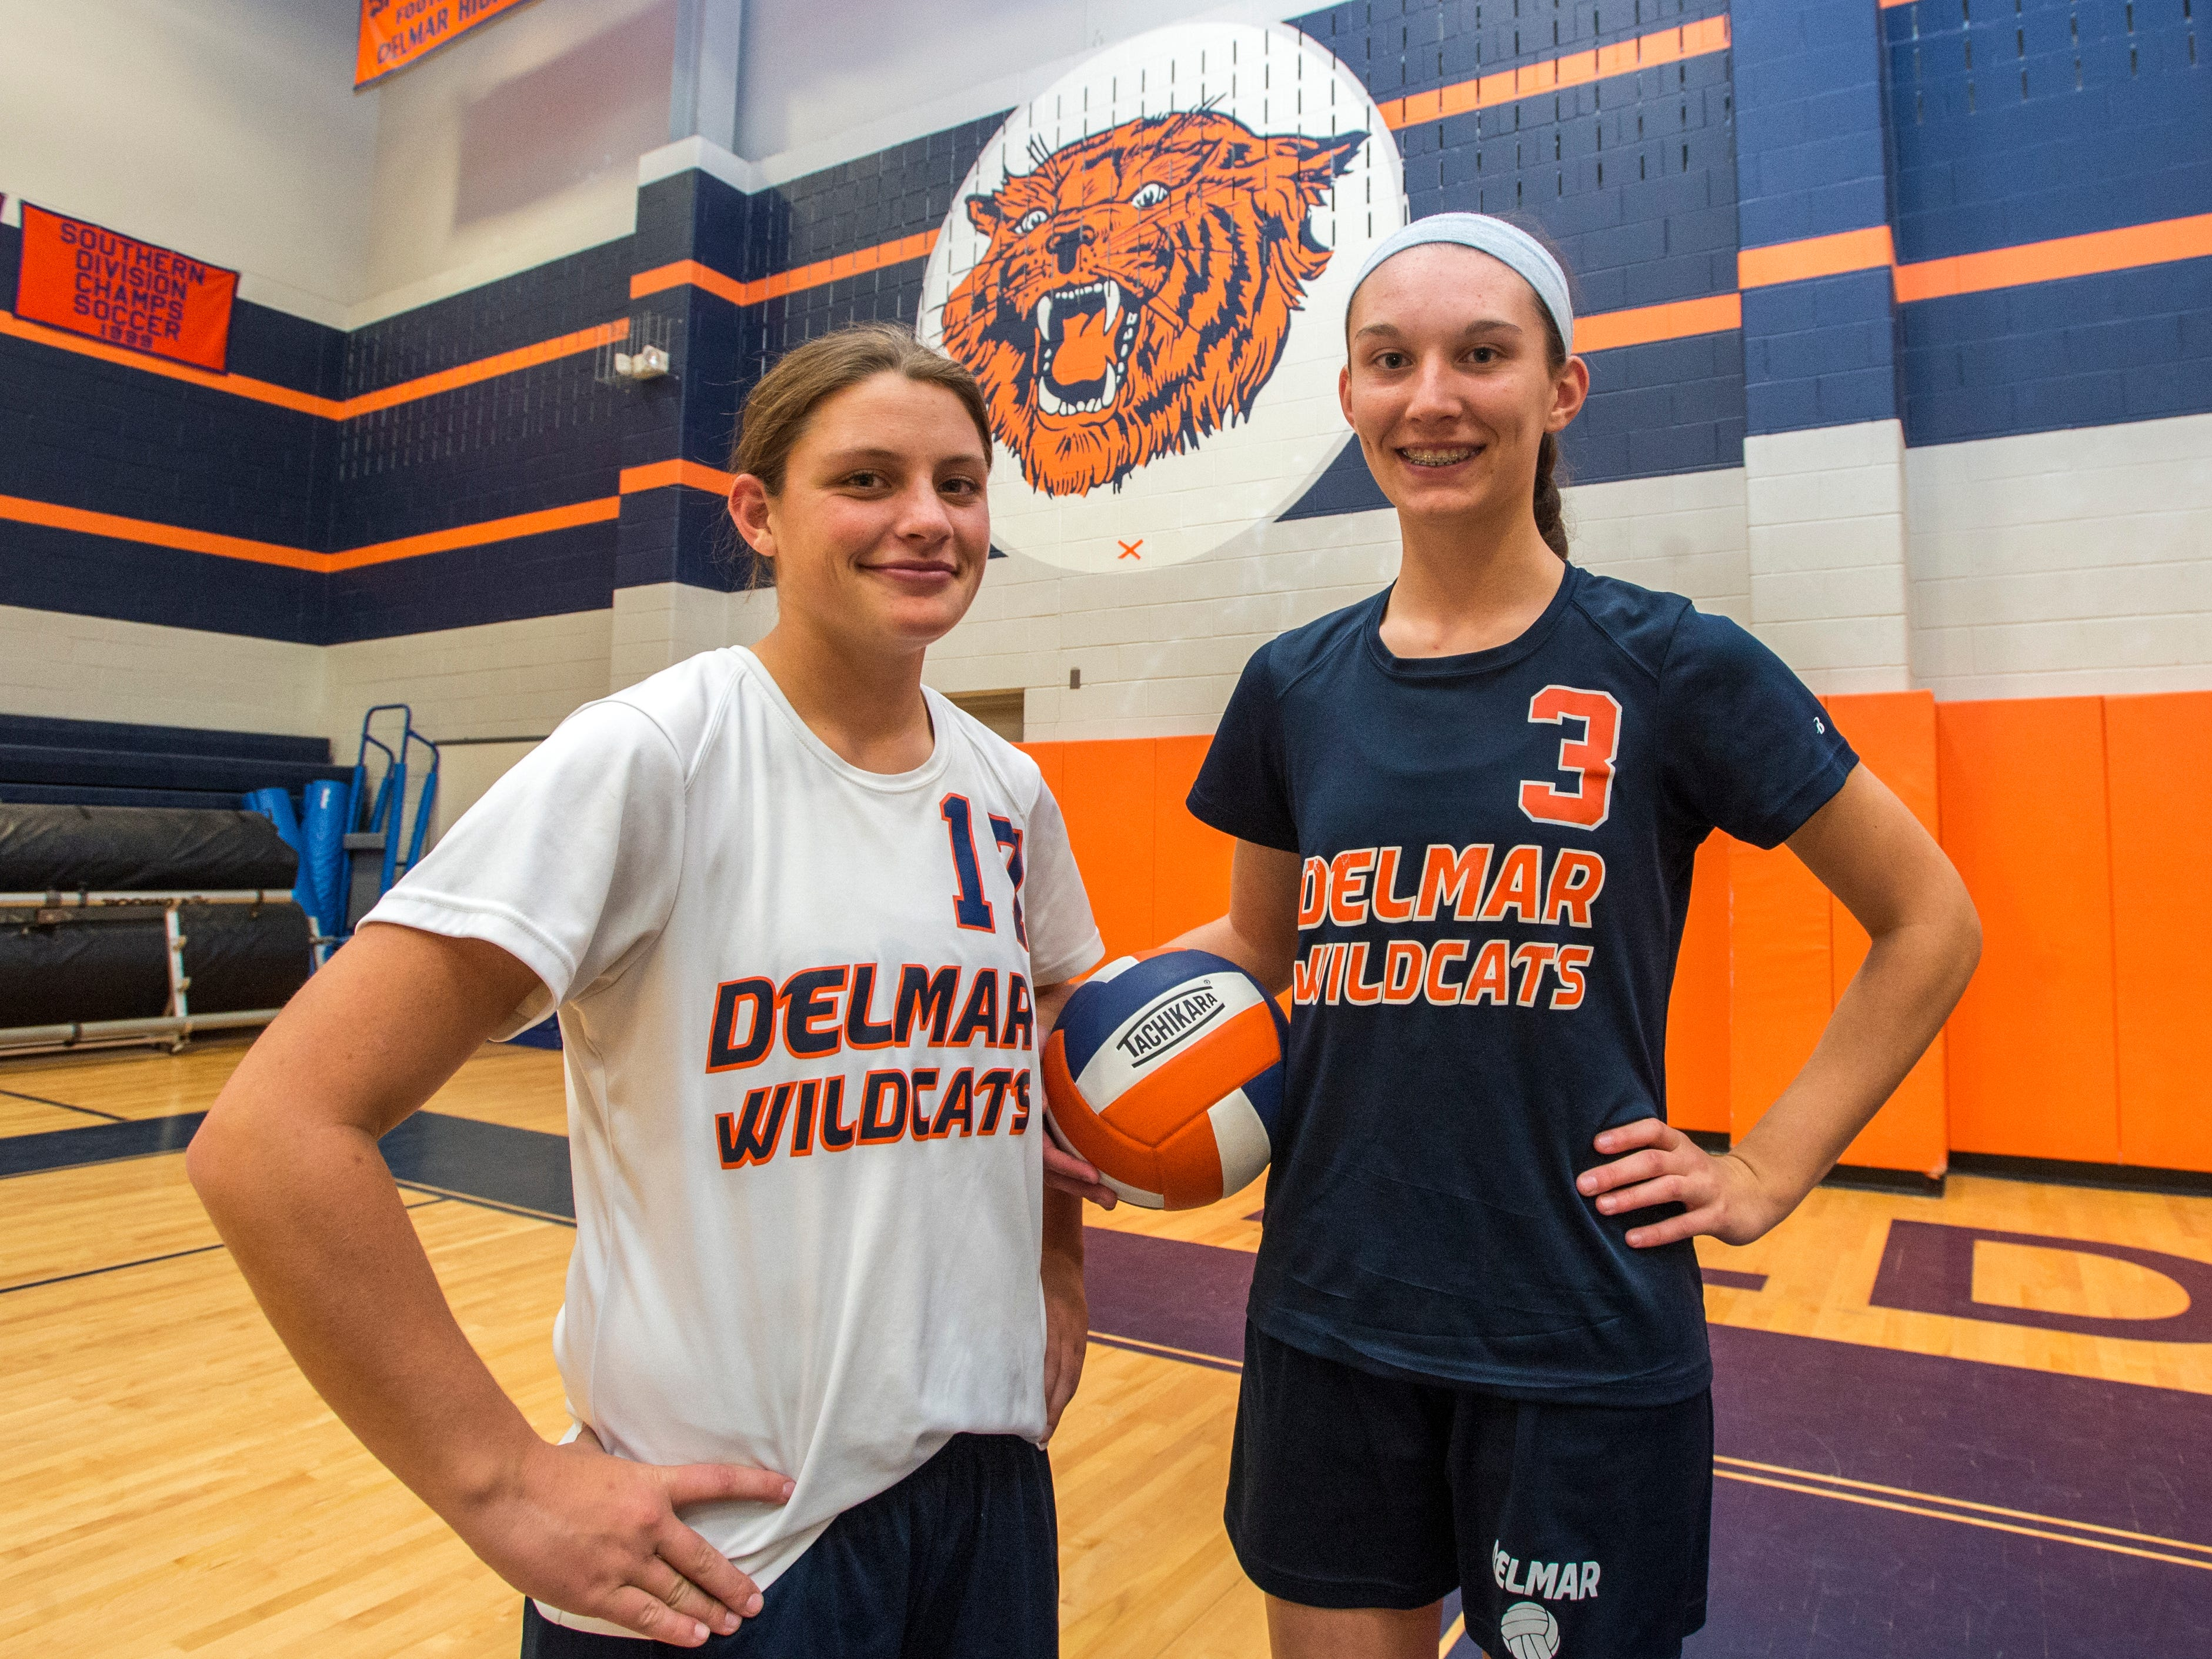 Ashton Riddle, left, and Carly Covington are captains of Delmar's volleyball team.